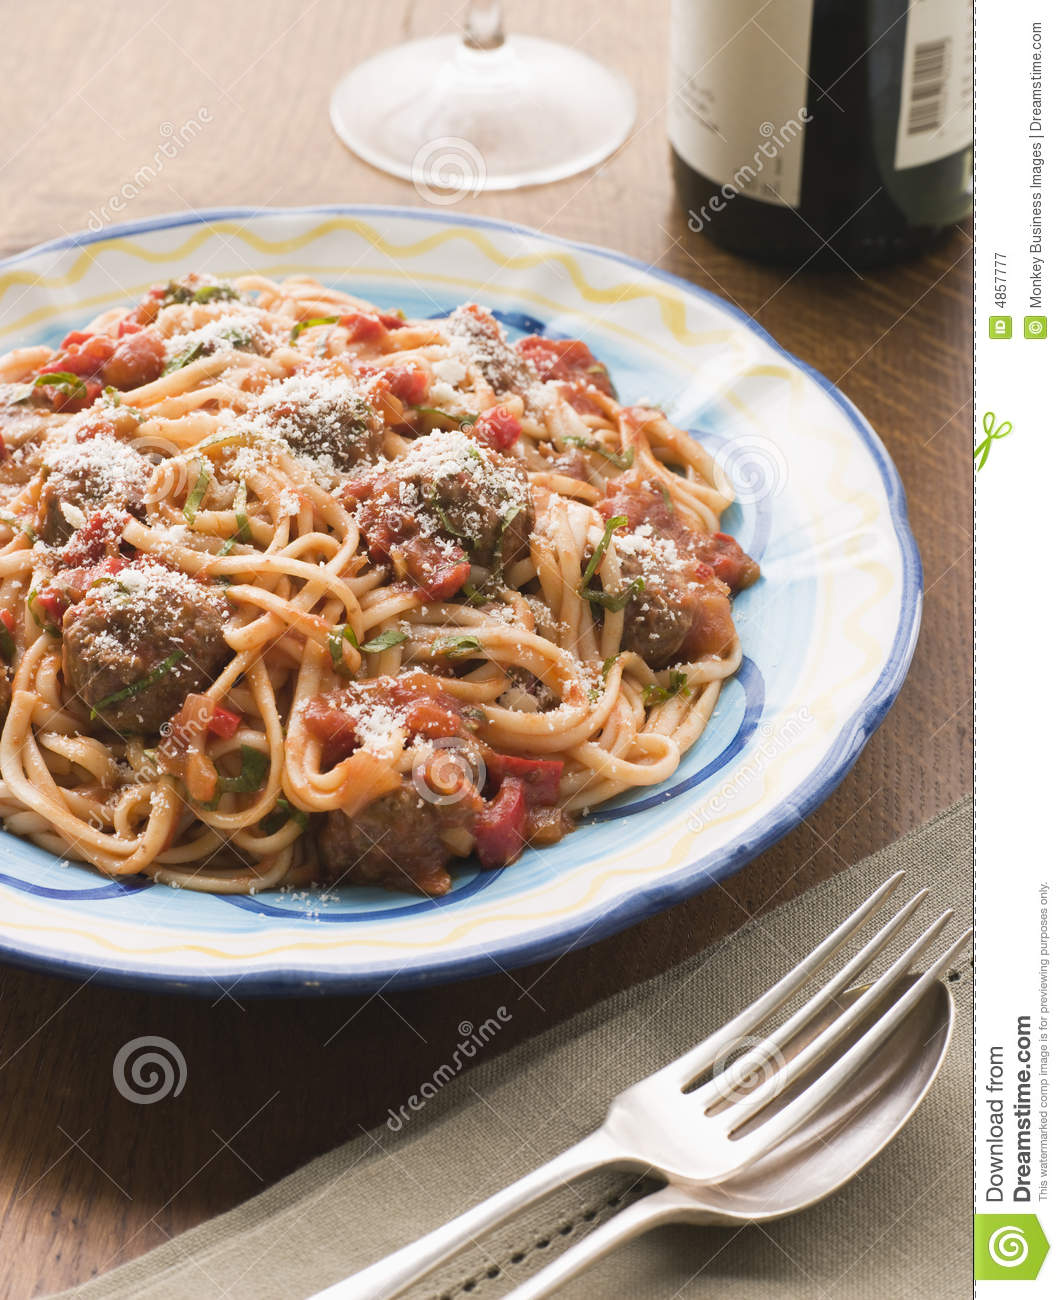 Spaghetti With Tomato Sauce And Parmesan Cheese Royalty Free Stock ...